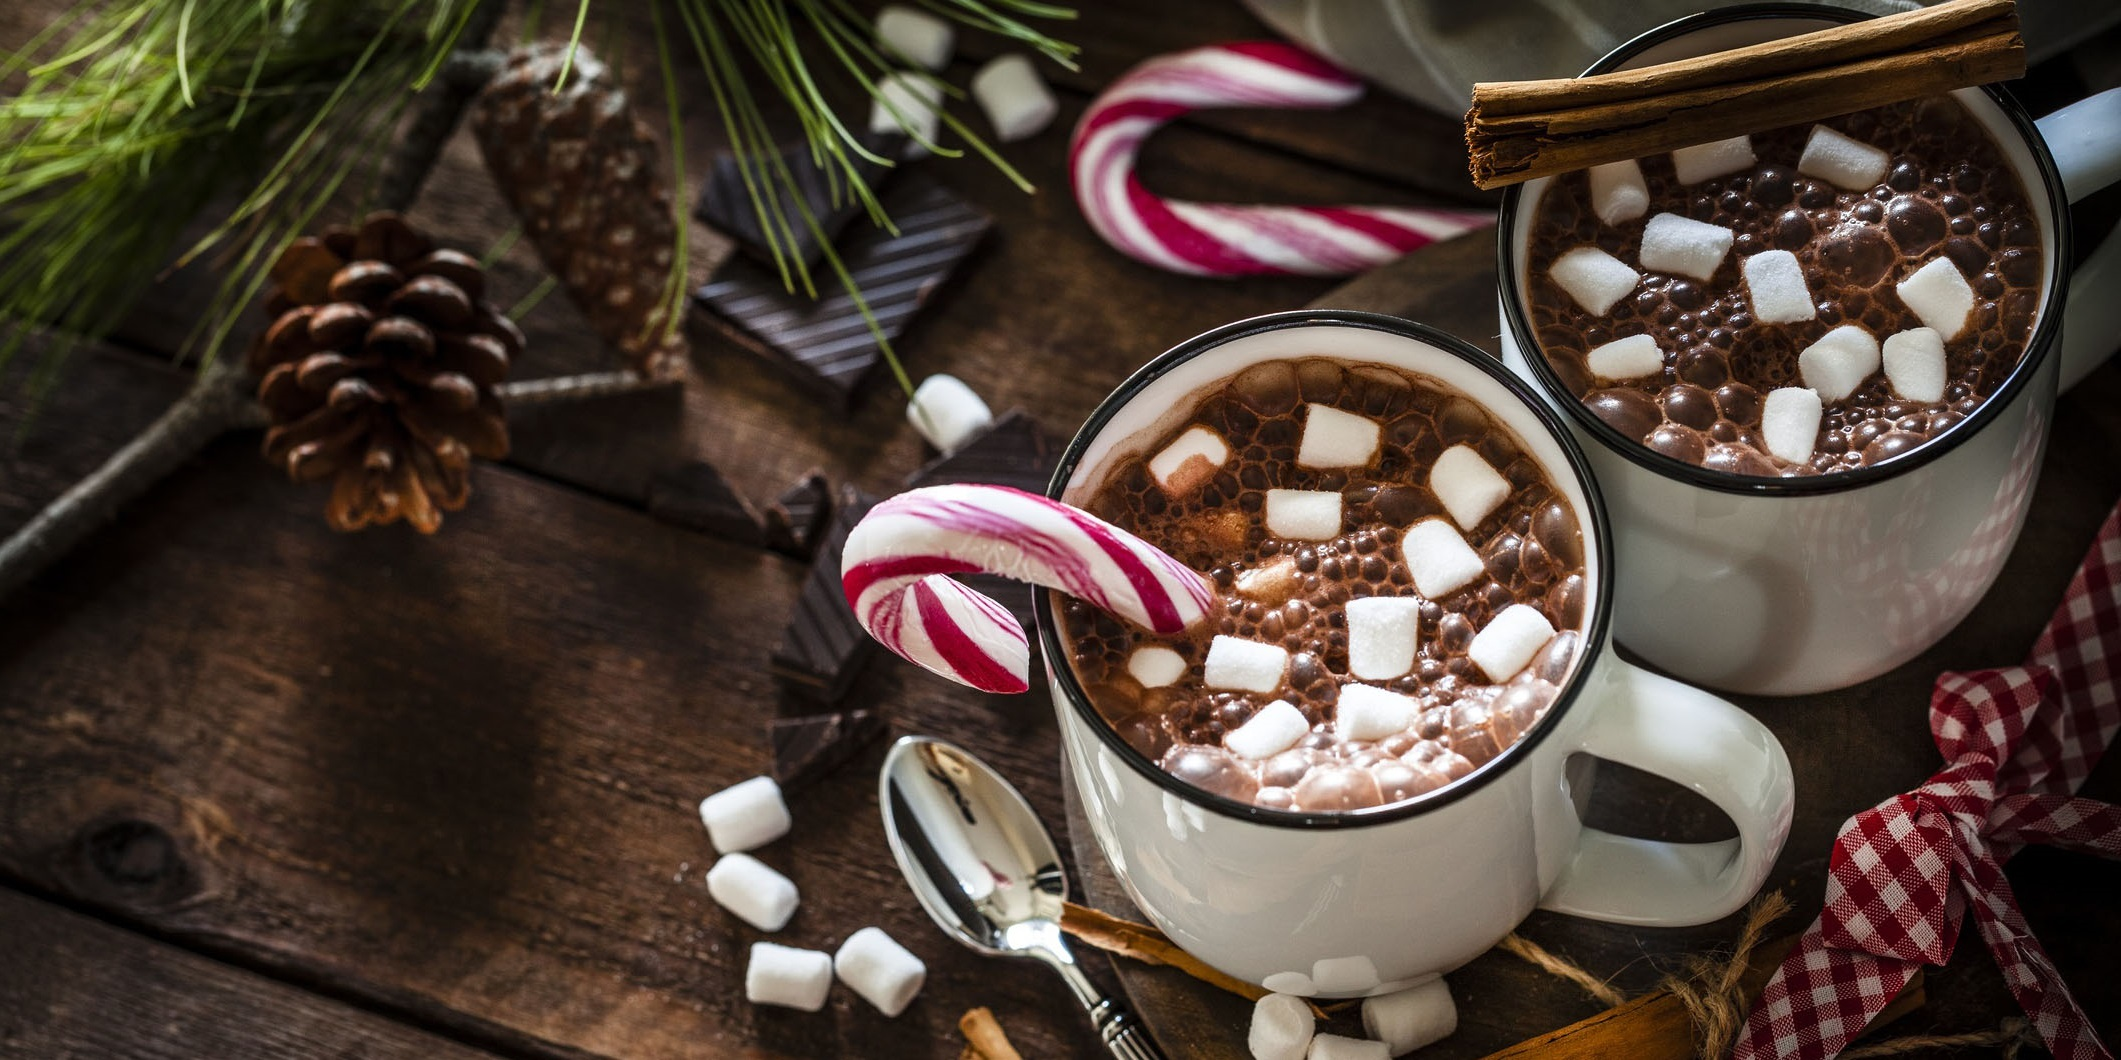 Happy Holidays from Eastern Bank- Hot Chocolate Image